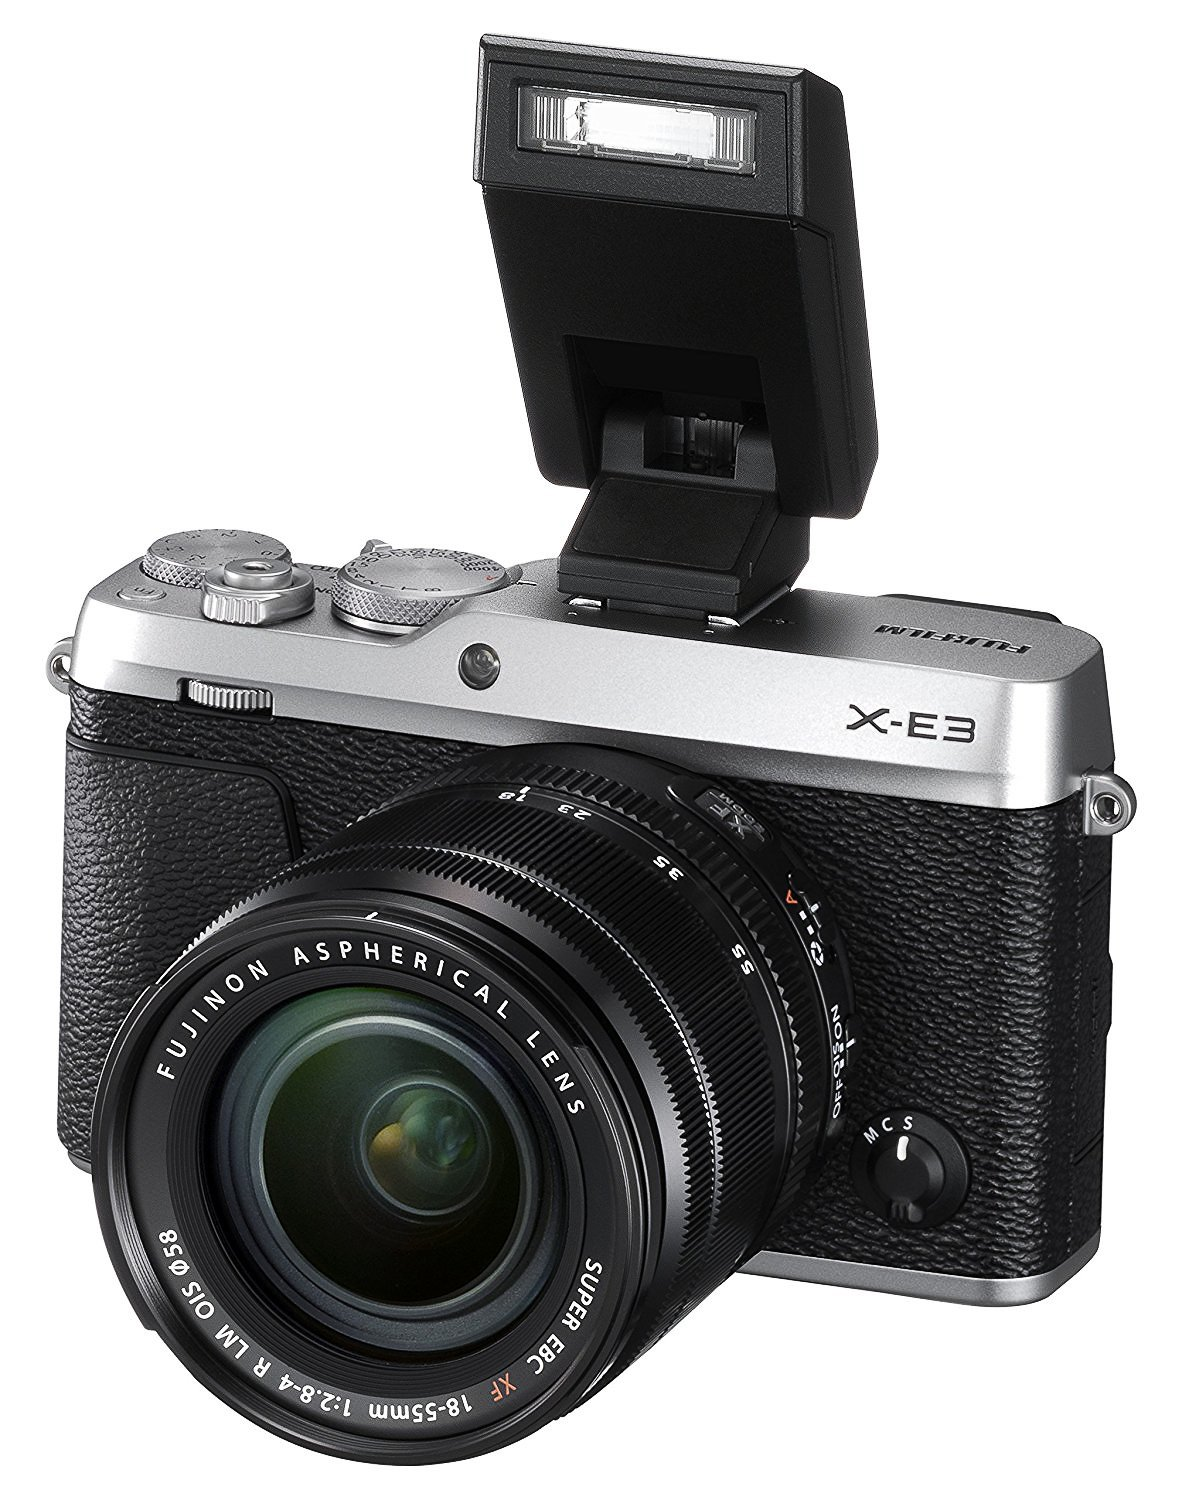 Fujifilm X-E3 Black body